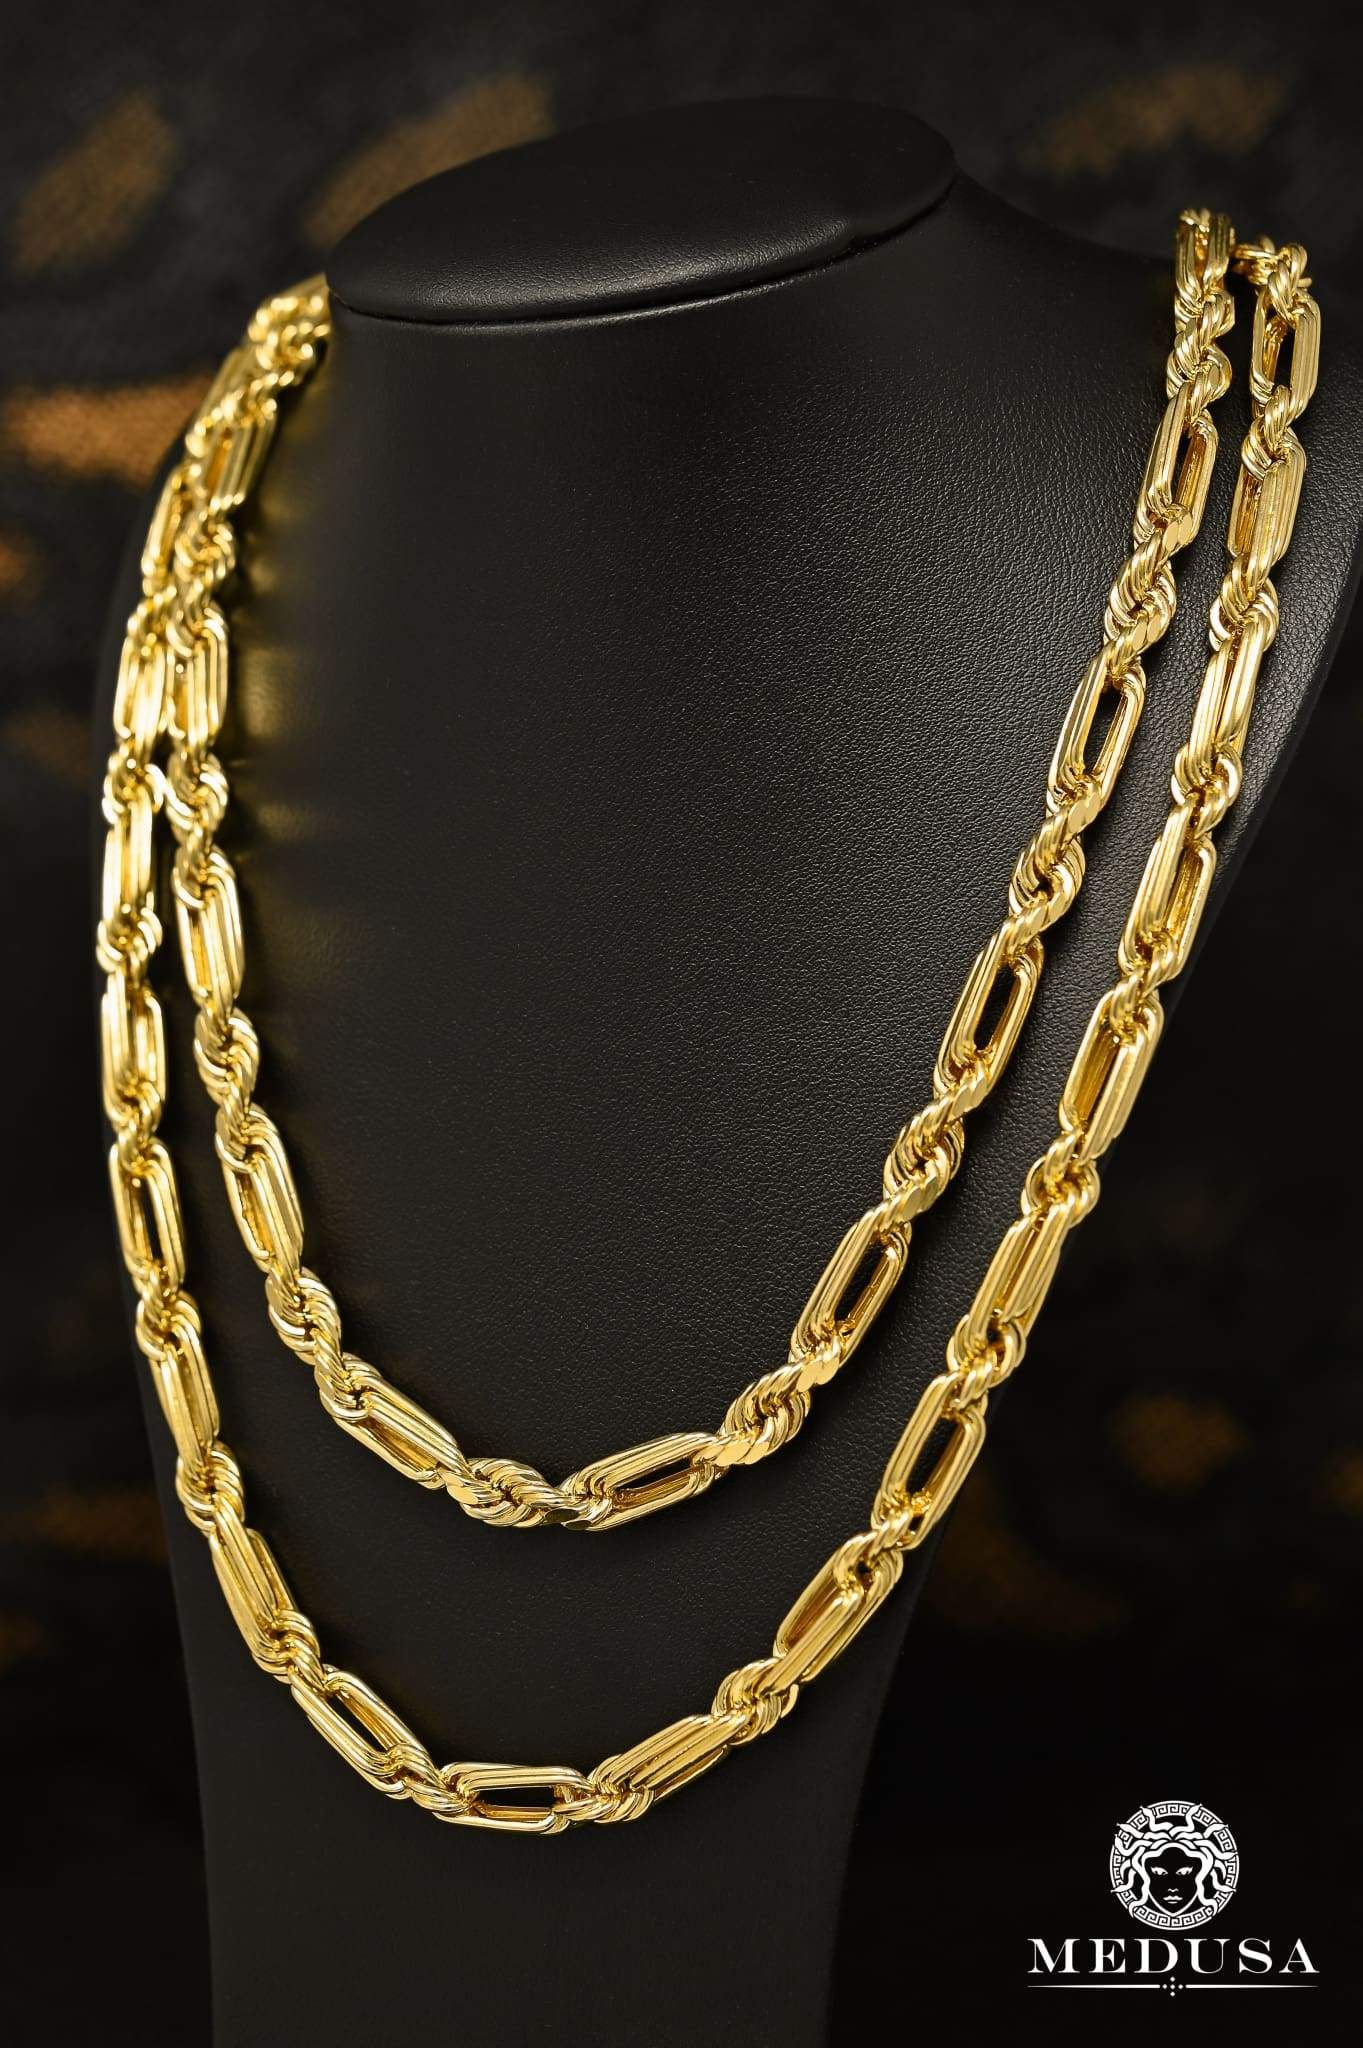 7mm Torsade Milano In 2020 Gold Chain Design Gold Jewelry